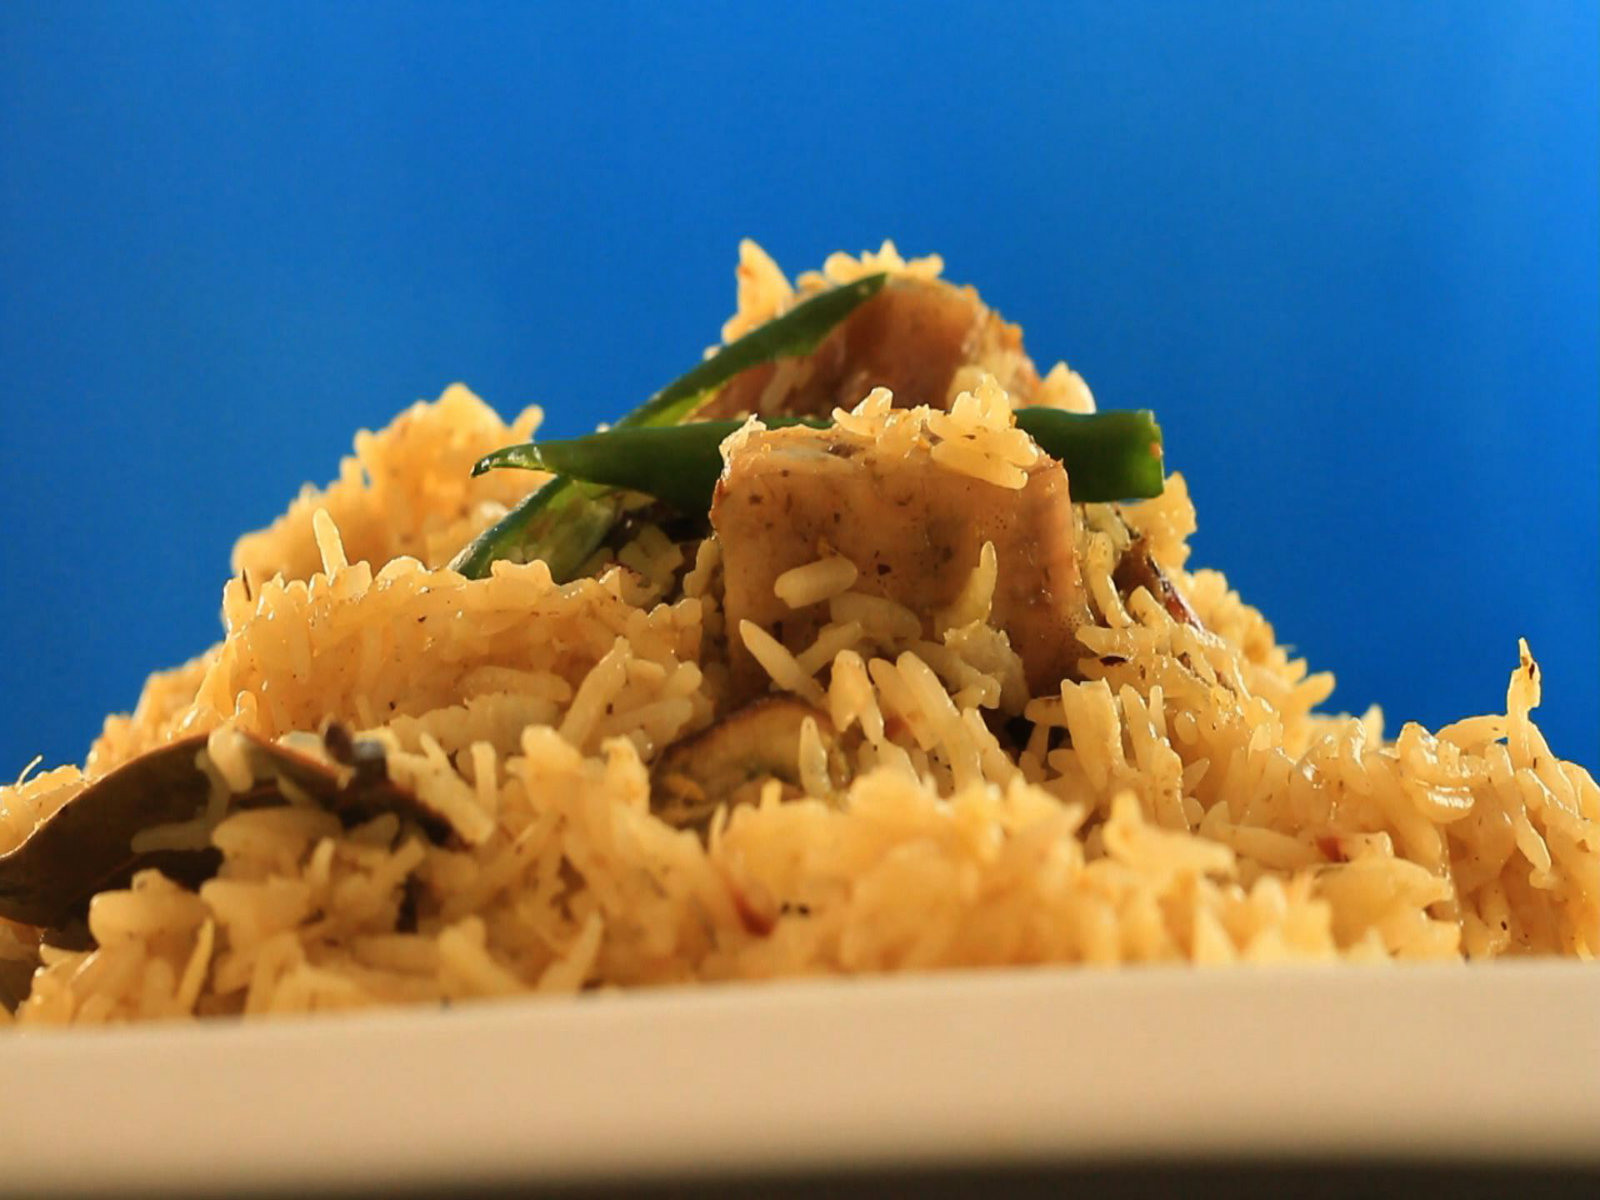 Fish fried rice recipe video by bikramjits kitchen for Fish fried rice